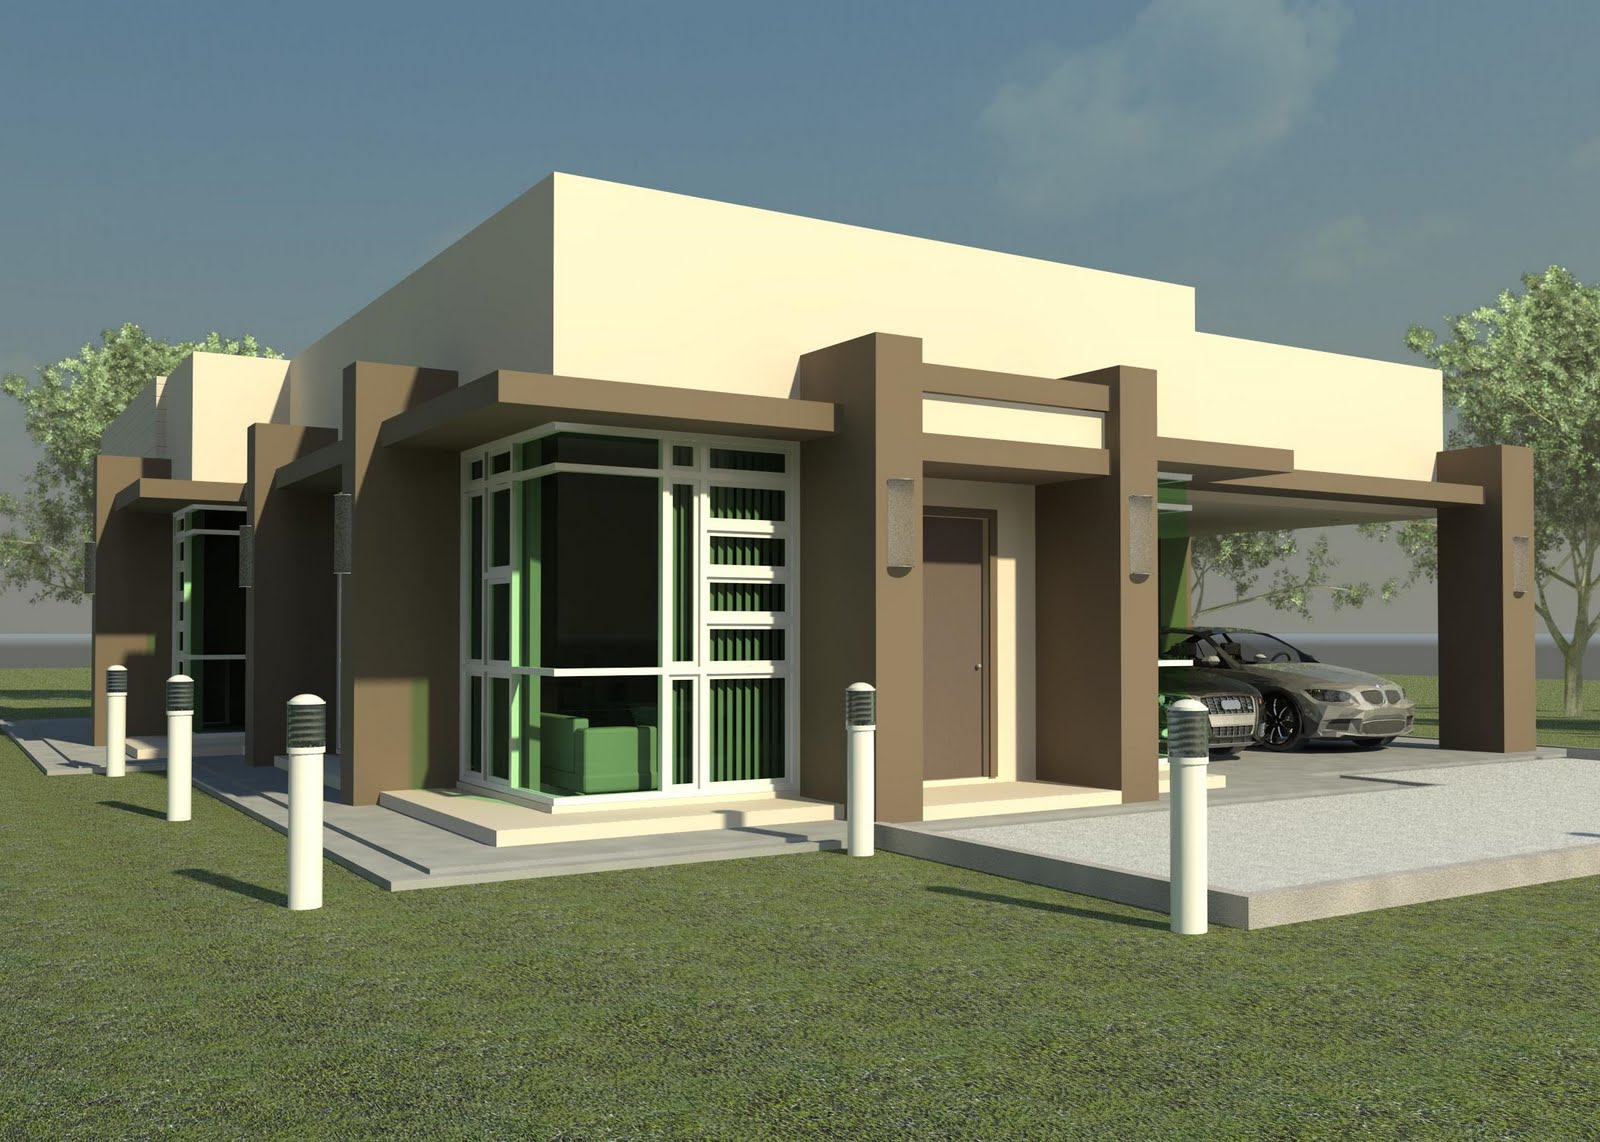 New home designs latest modern homes beautiful single - Small modern home designs ...